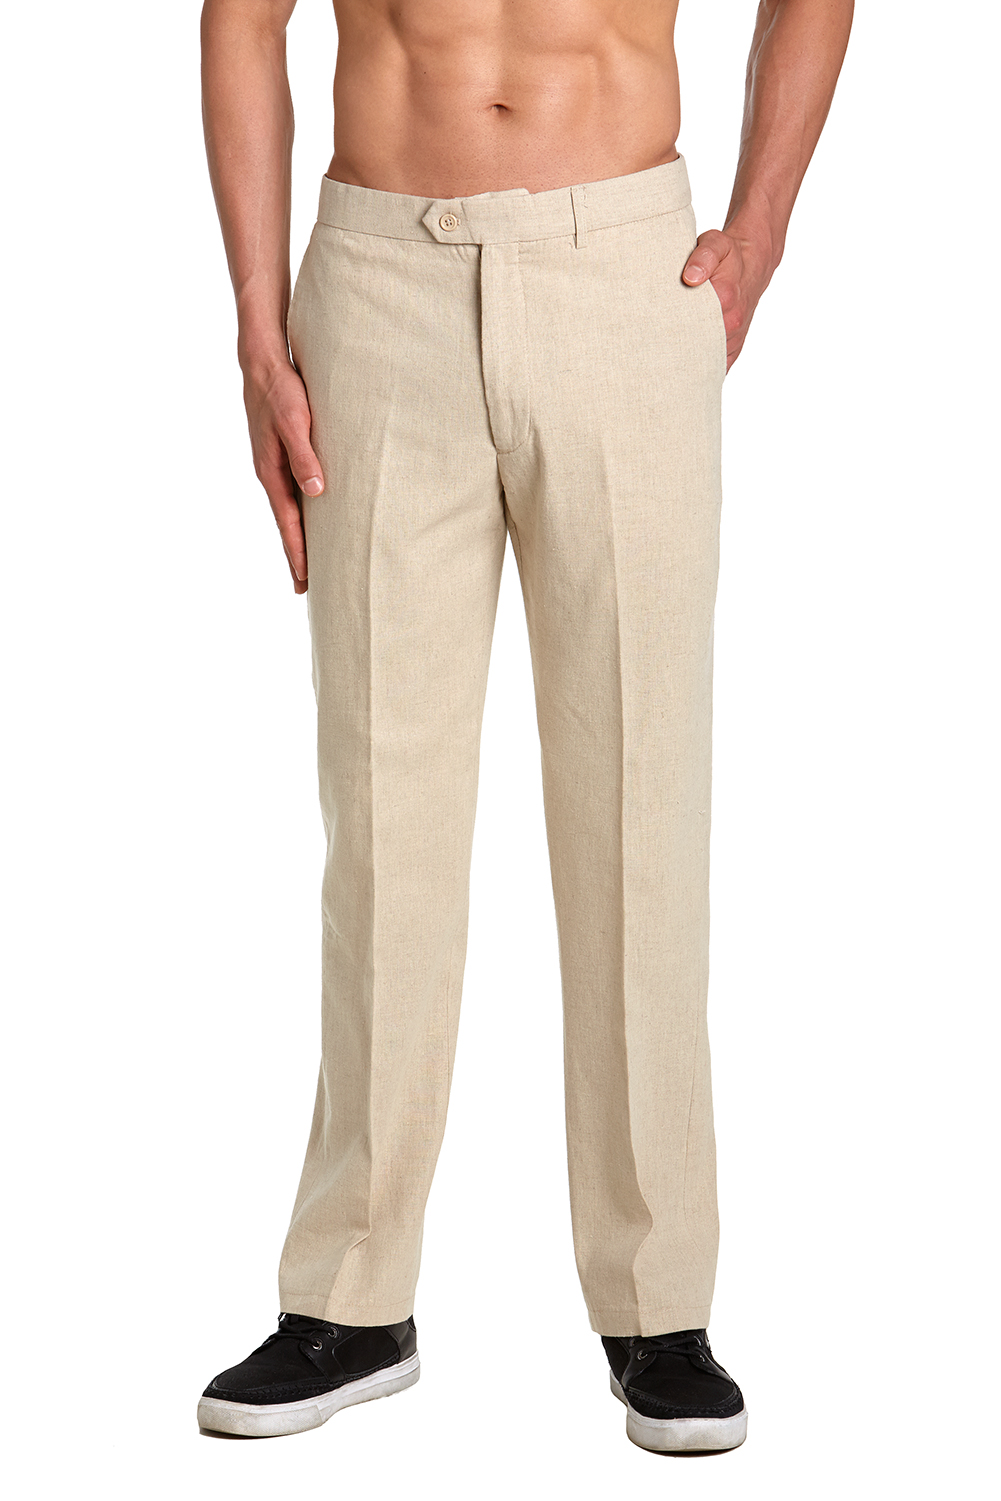 Find great deals on eBay for mens dress pants. Shop with confidence.